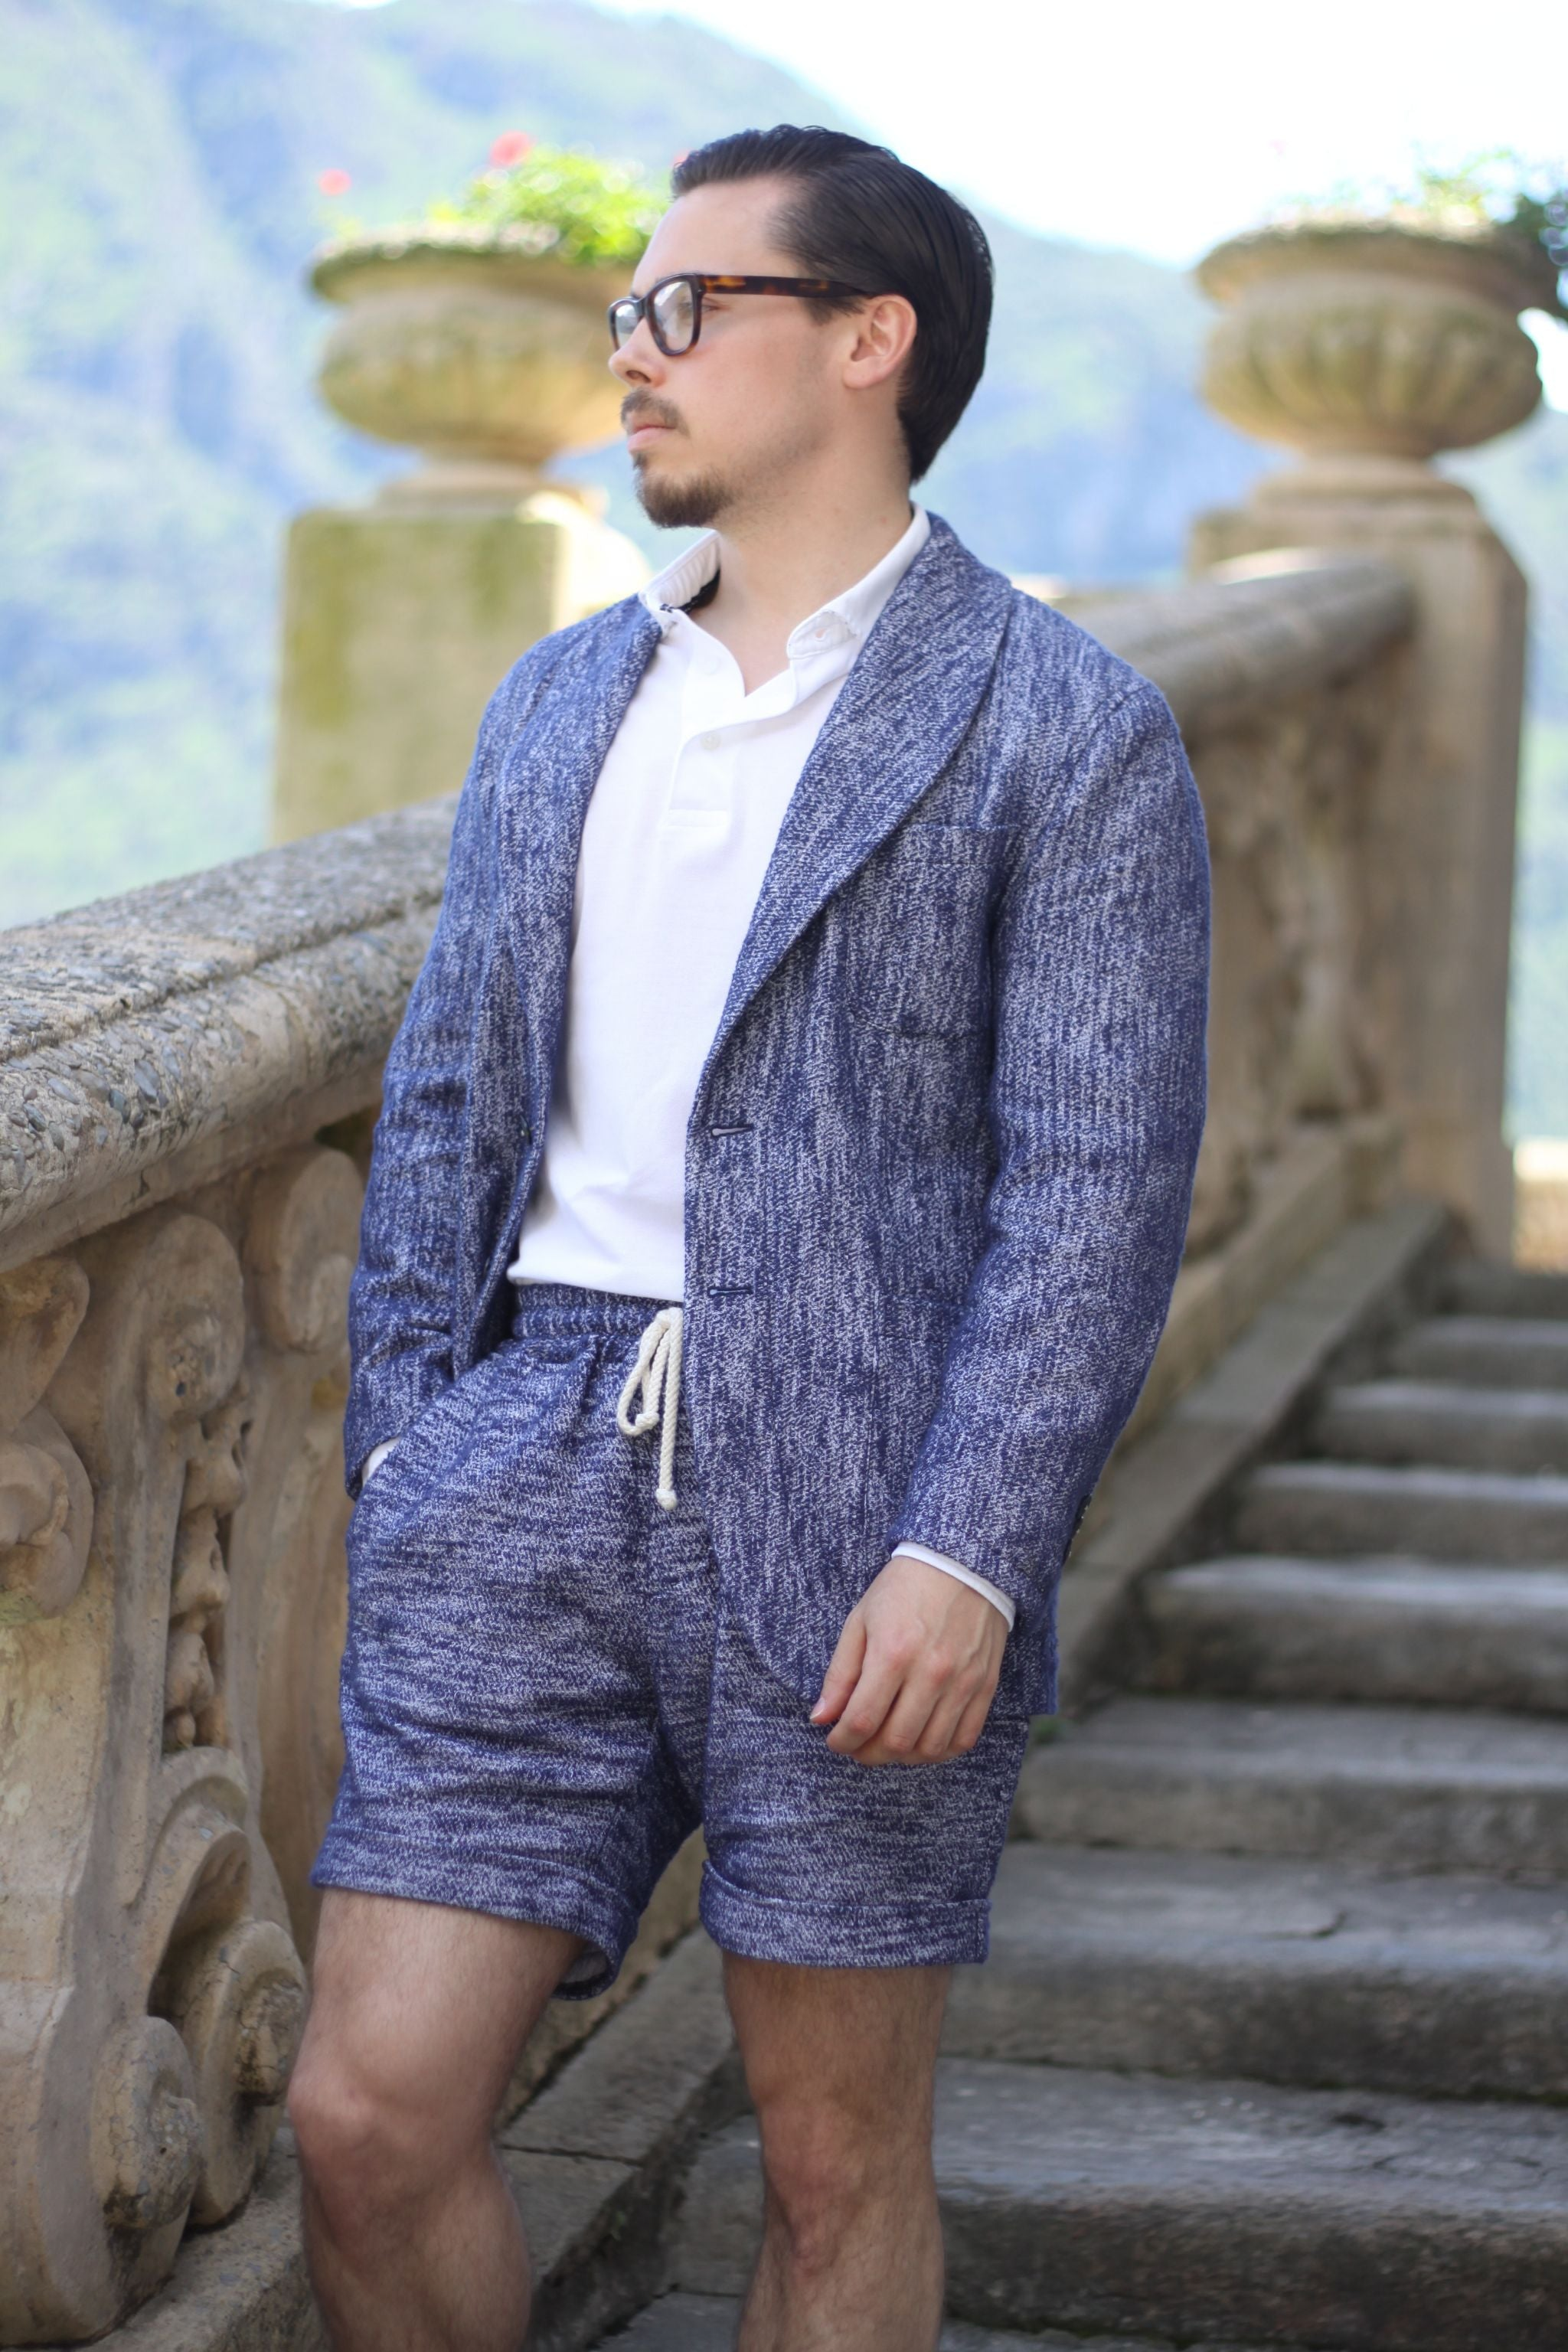 The GIGI heroes - suit with shorts